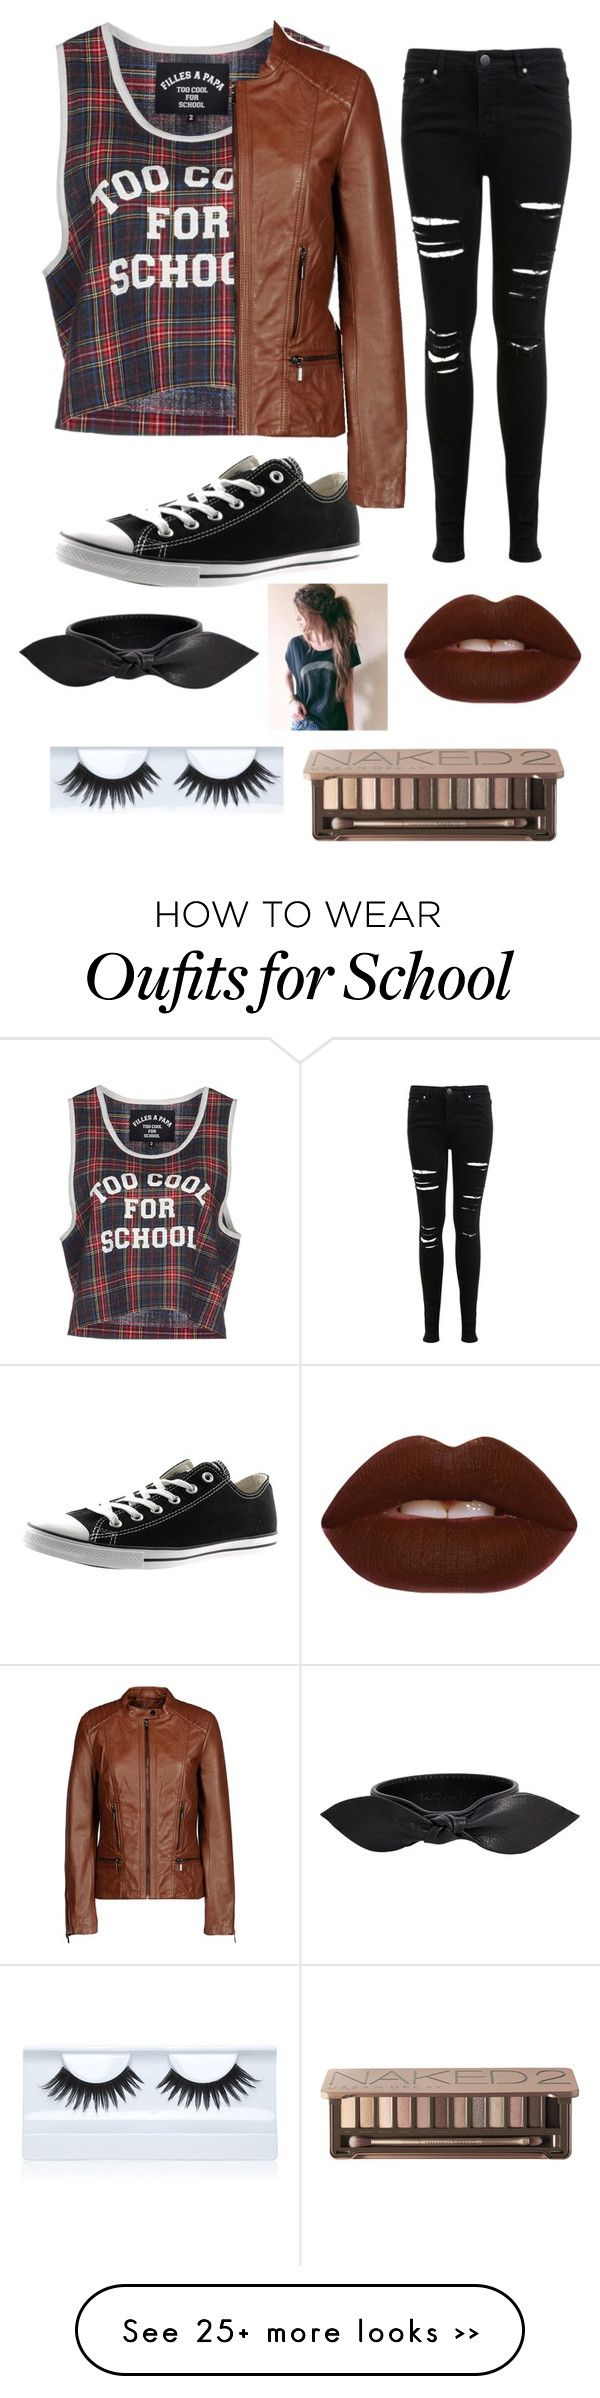 """too cool for school"" by megatron800 on Polyvore"